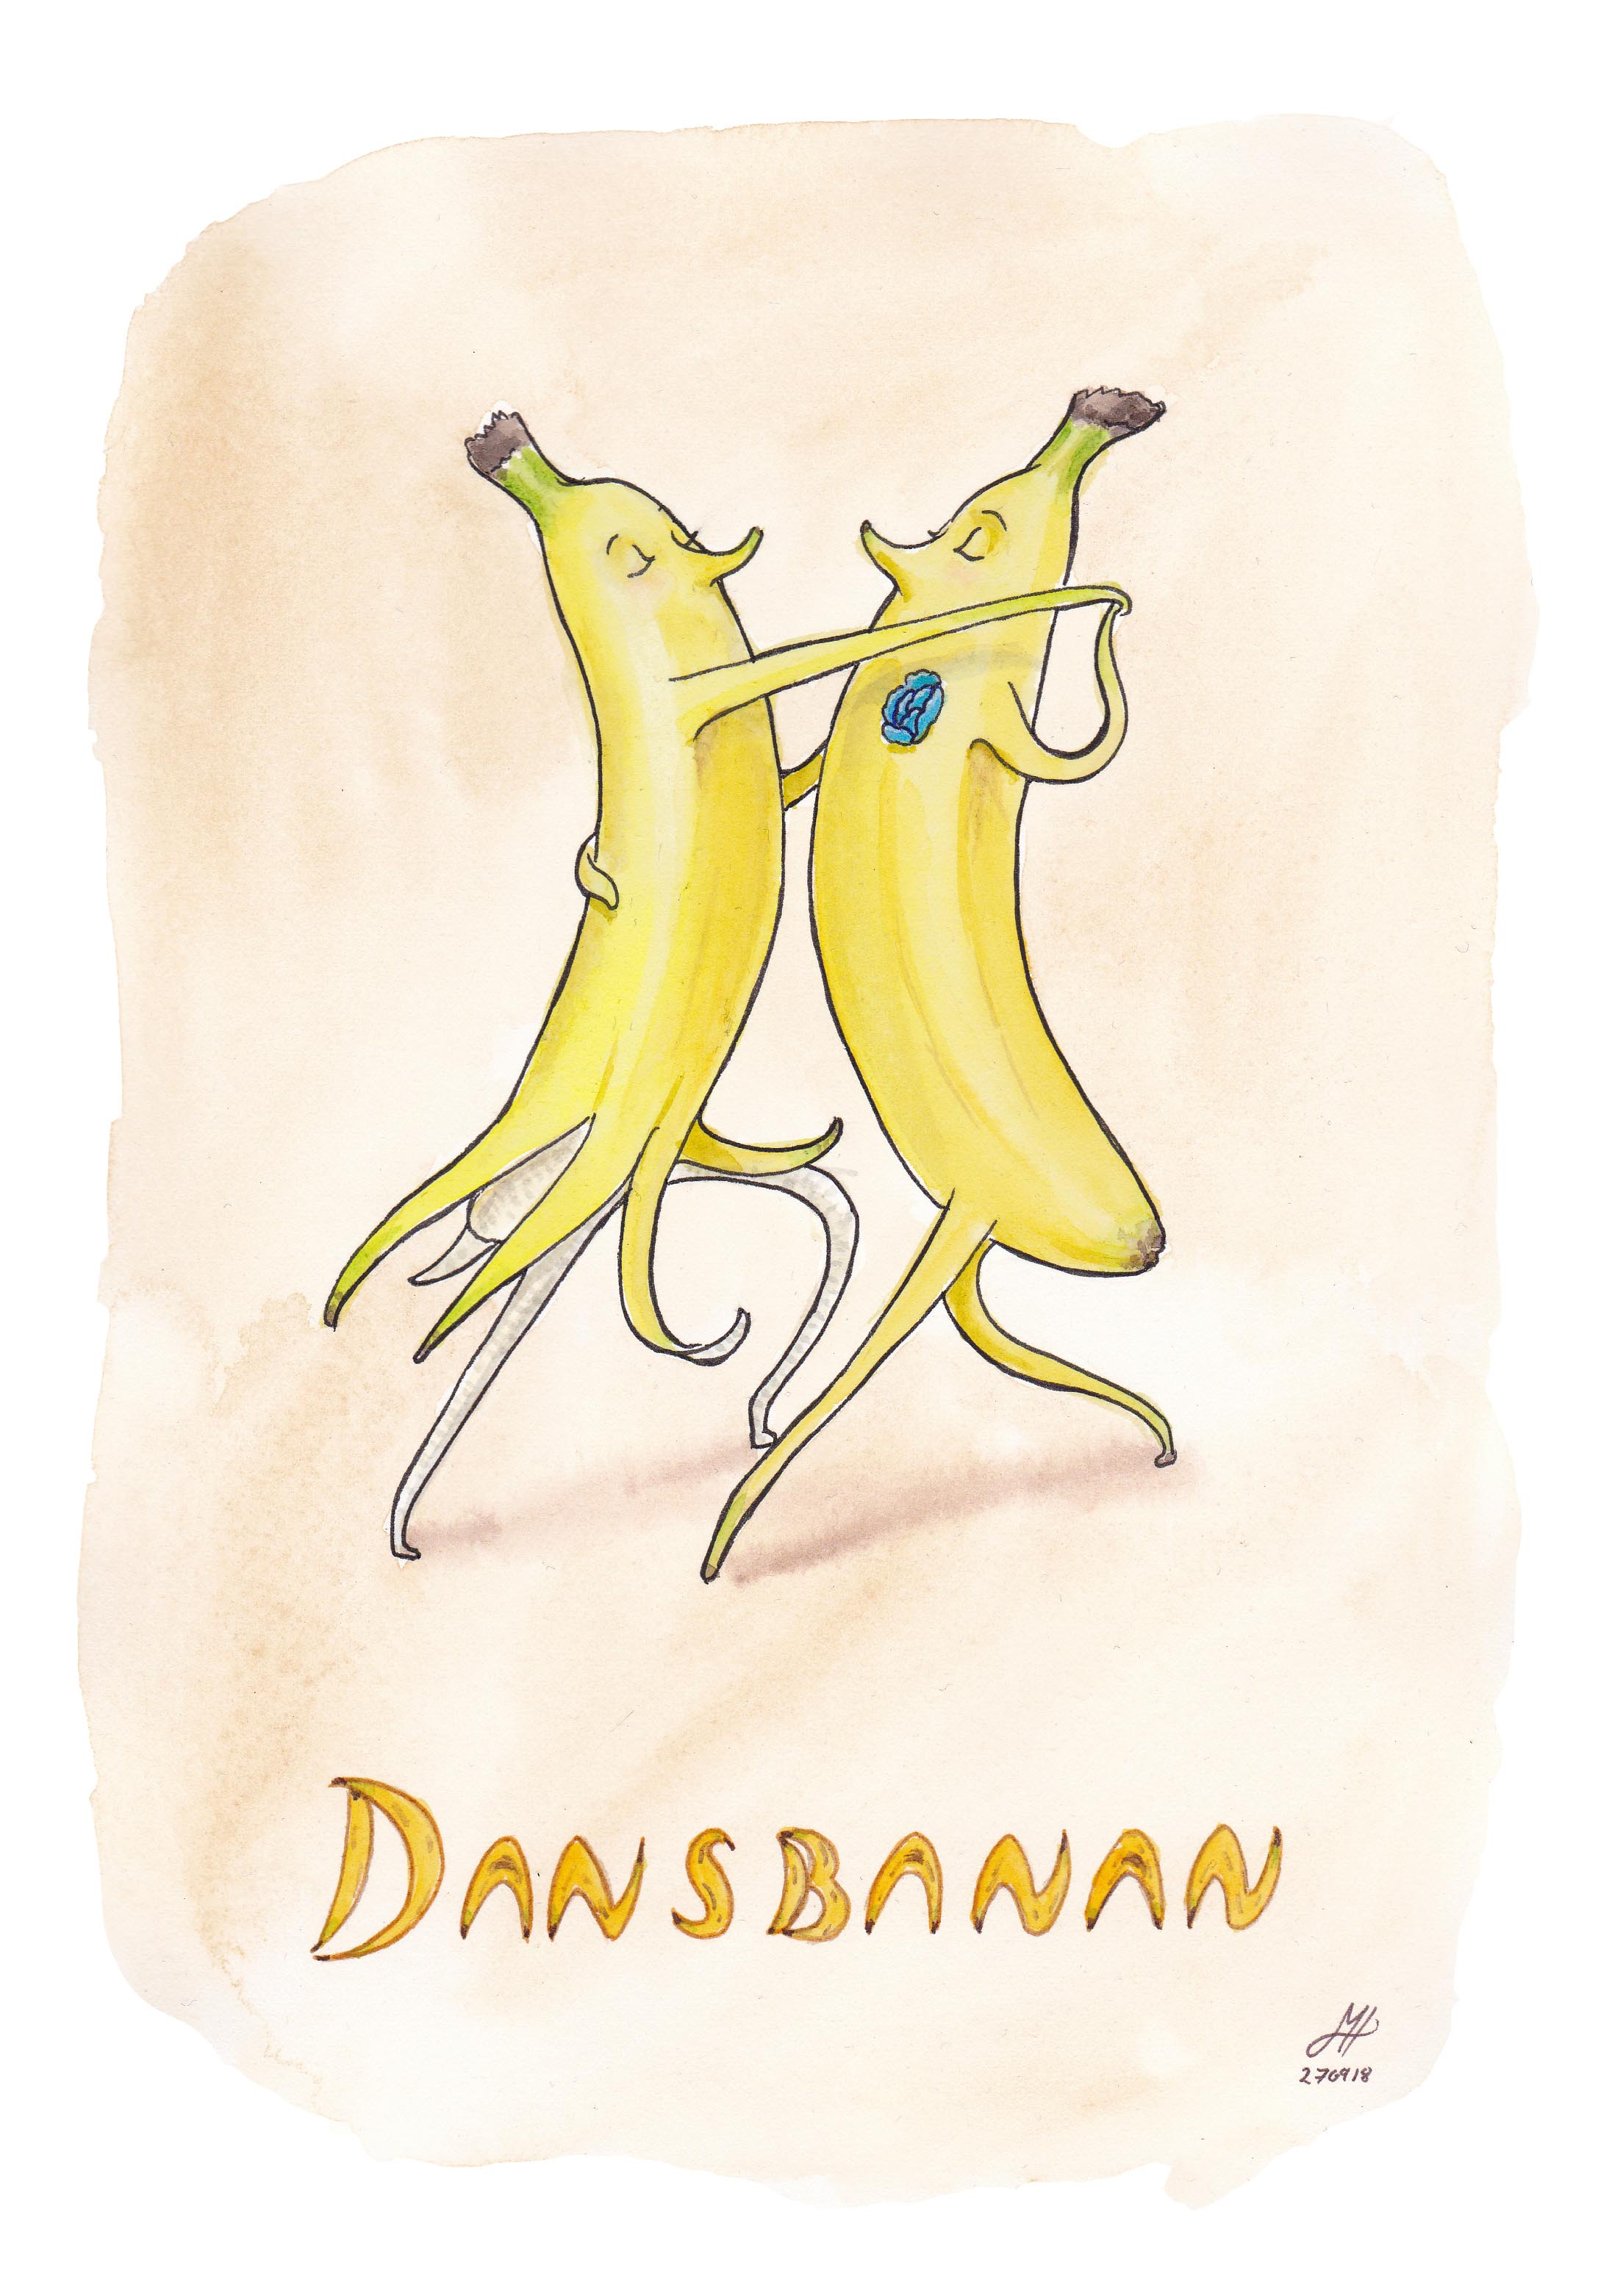 dansbanan illustration ordvits